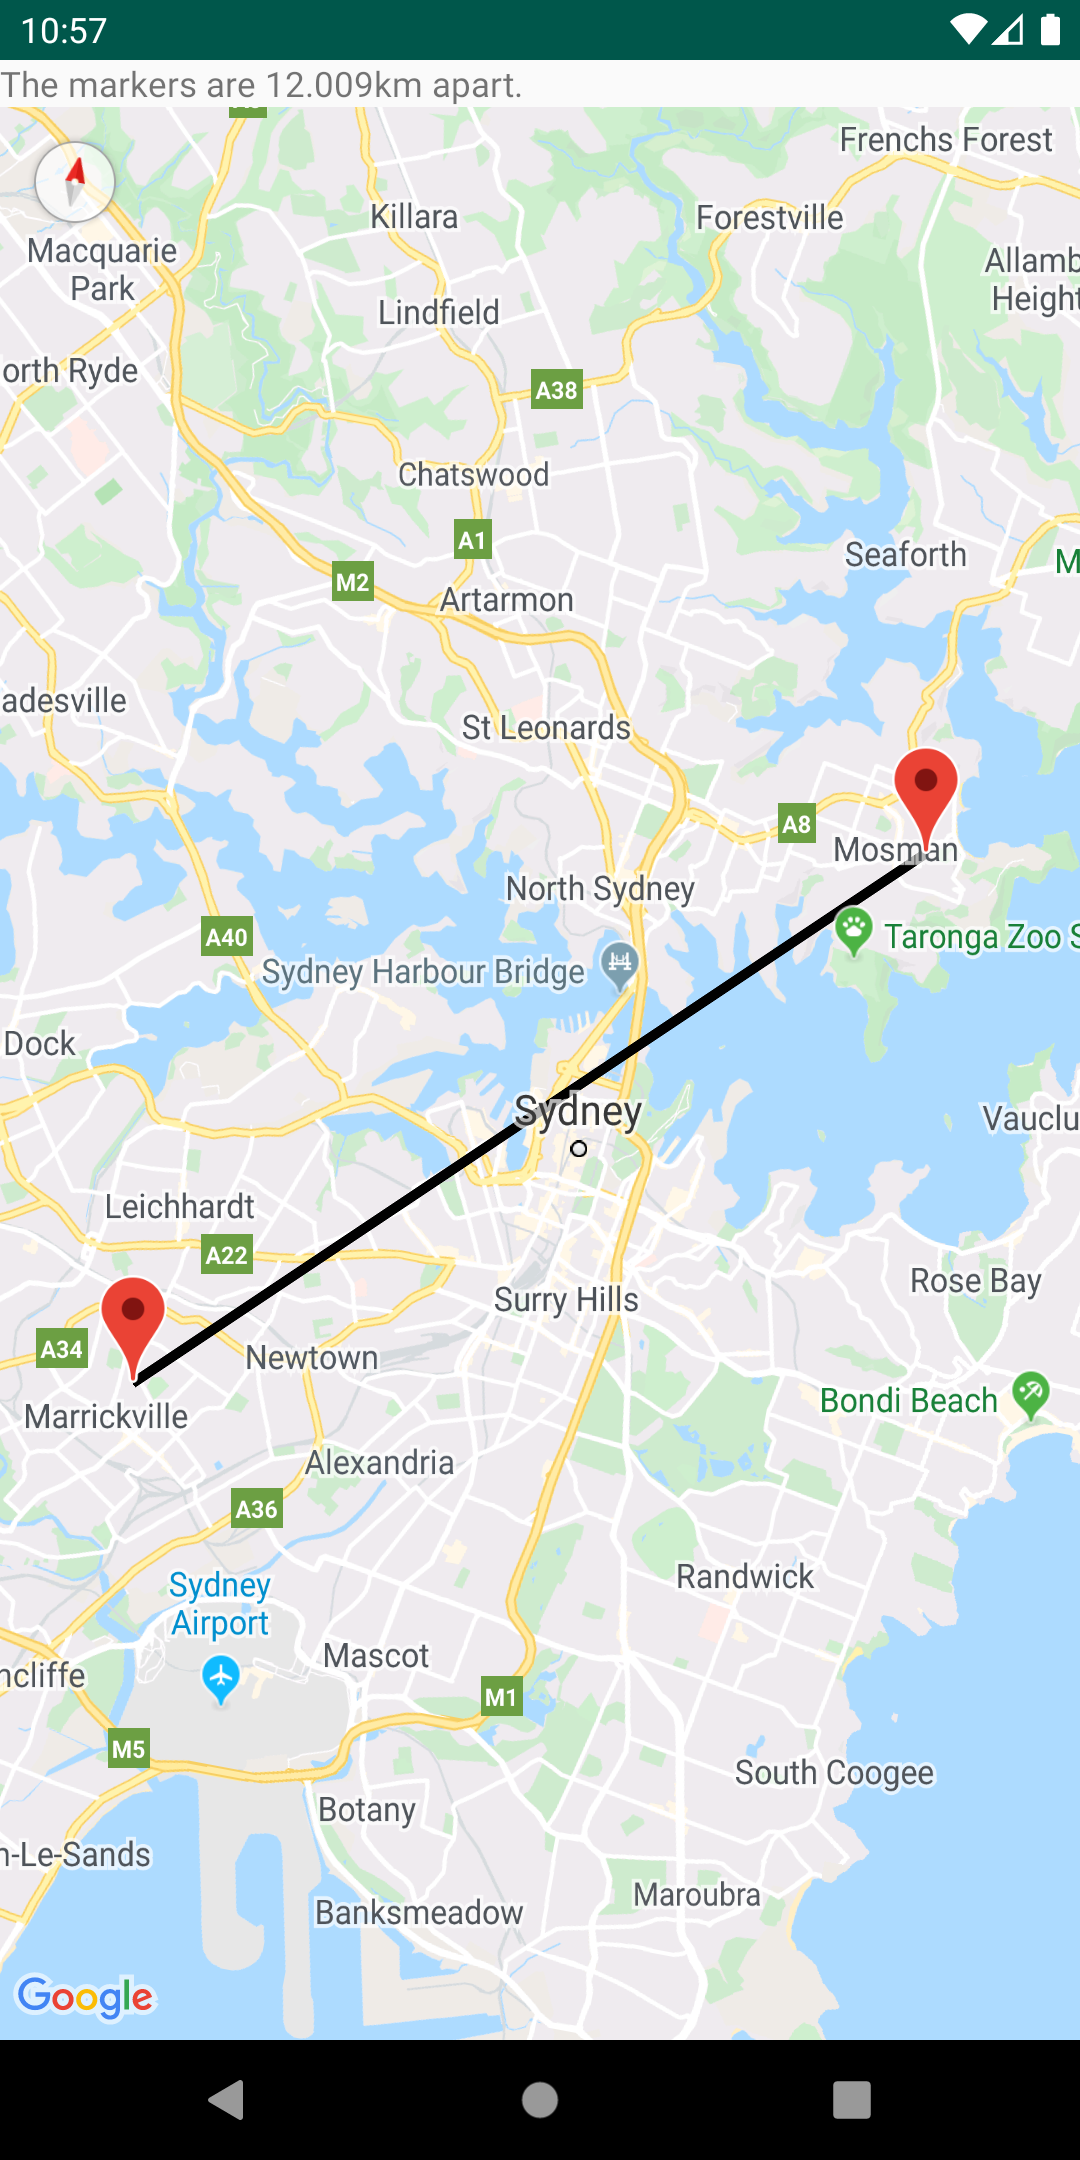 Calculated distance between two points on a map